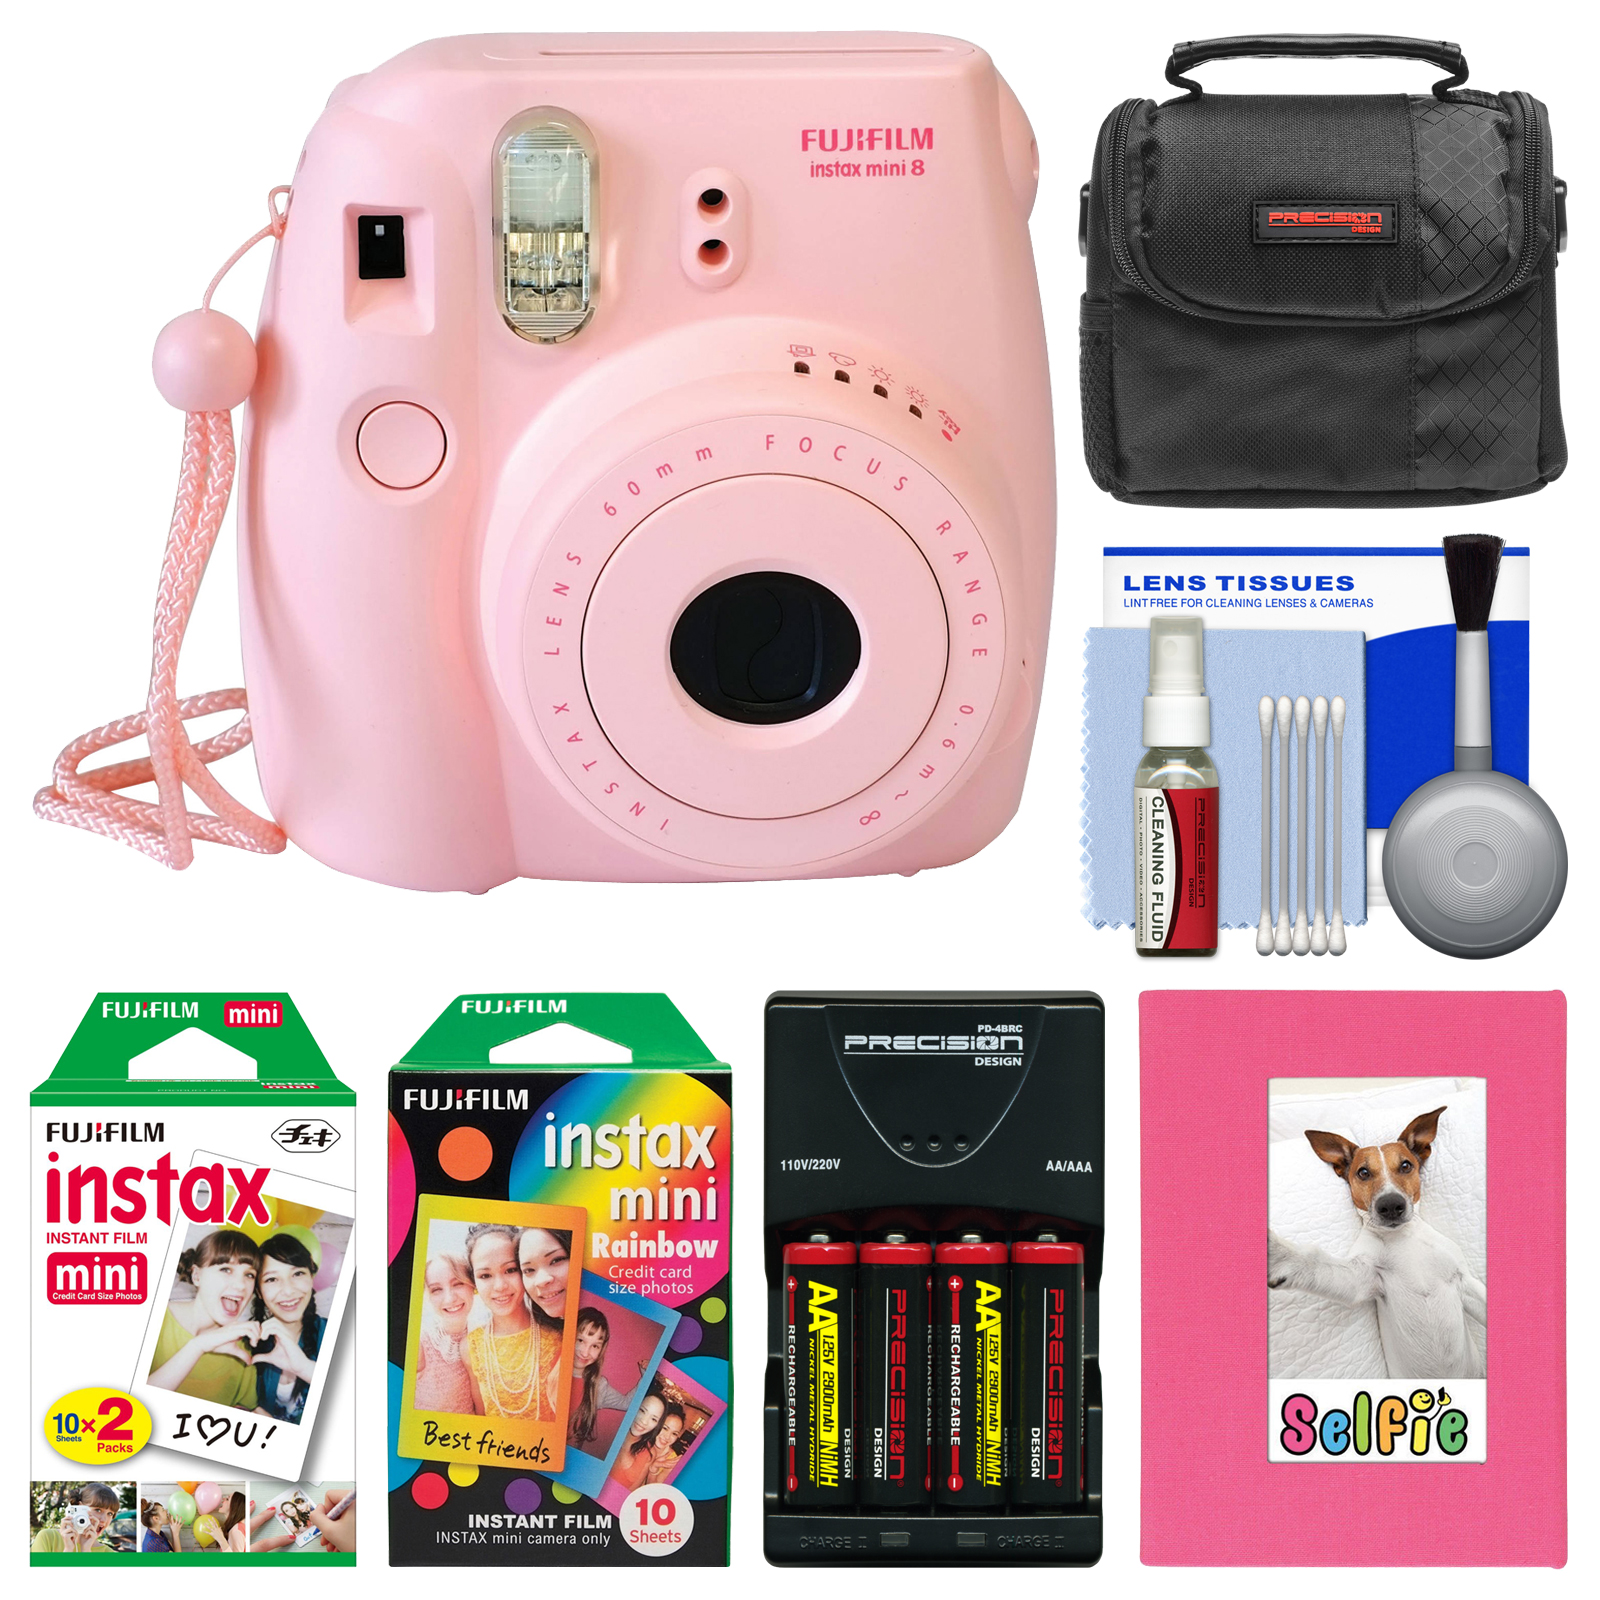 Fujifilm Instax Mini 8 Instant Film Camera (Pink) with Photo Album   Instant Film & Rainbow Film   Case   Batteries & Charger Kit